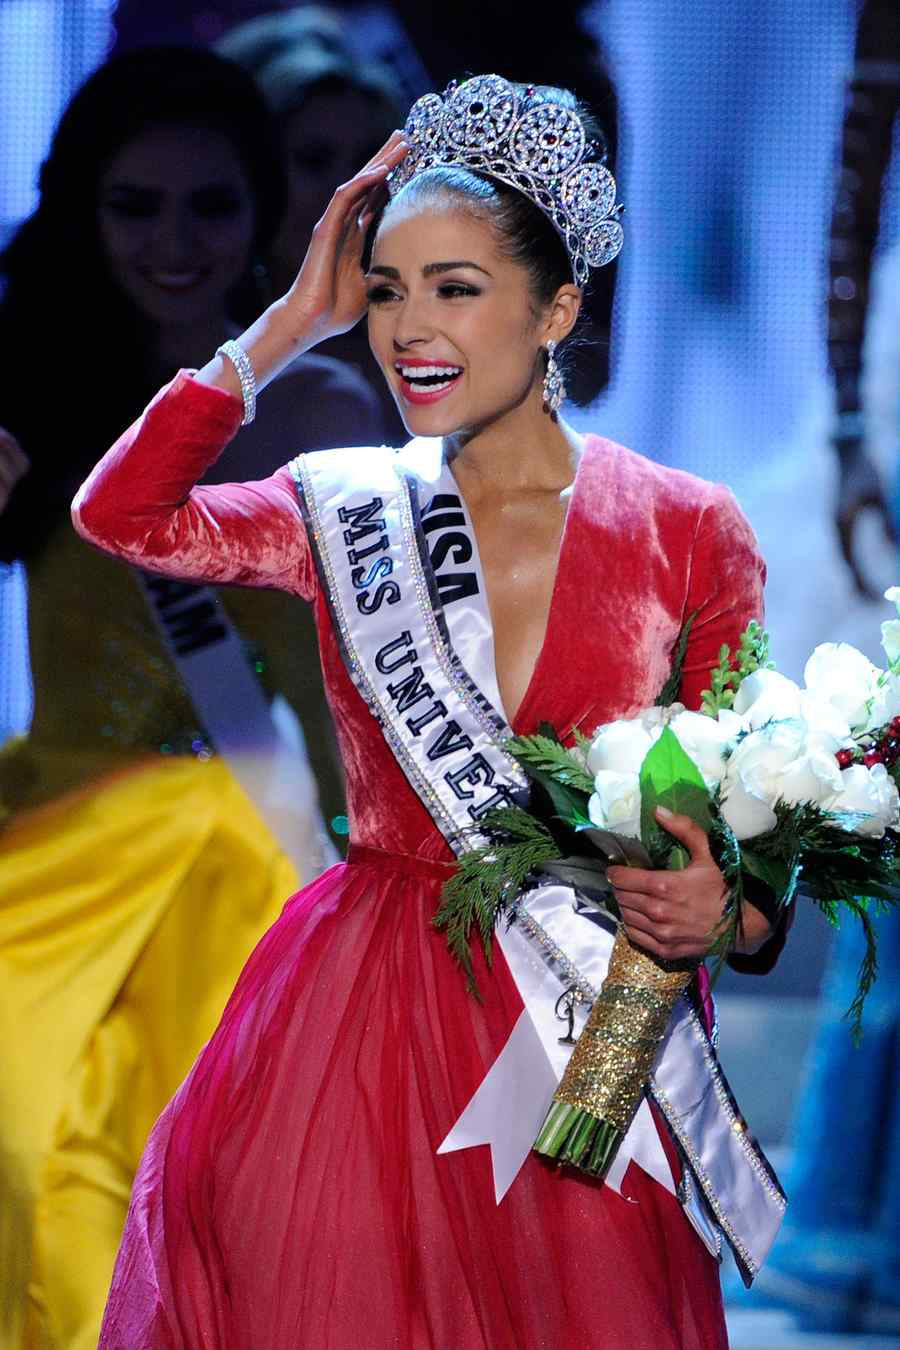 Olivia Culpo 2012 Miss Universe Pageant